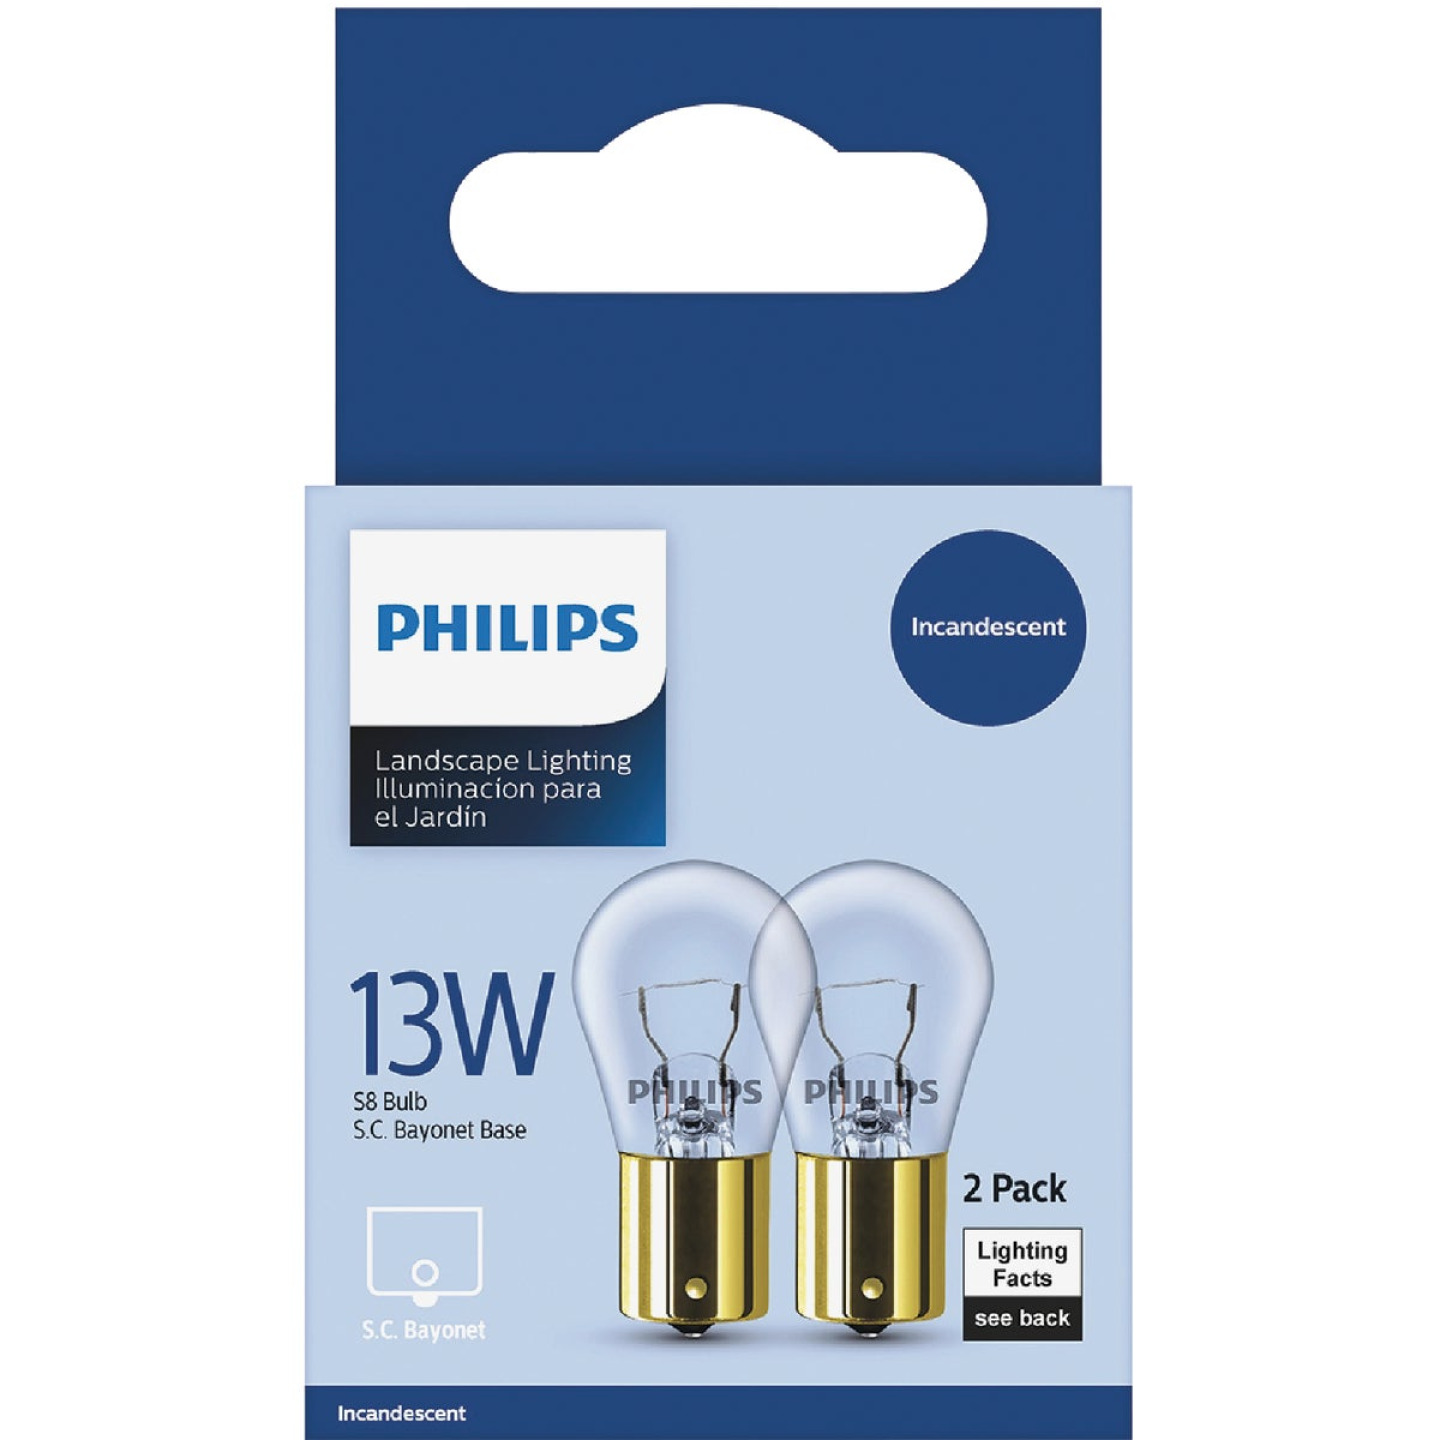 Philips 13W Soft White Bayonet Incandescent Appliance Light Bulb (2-Pack) Image 2